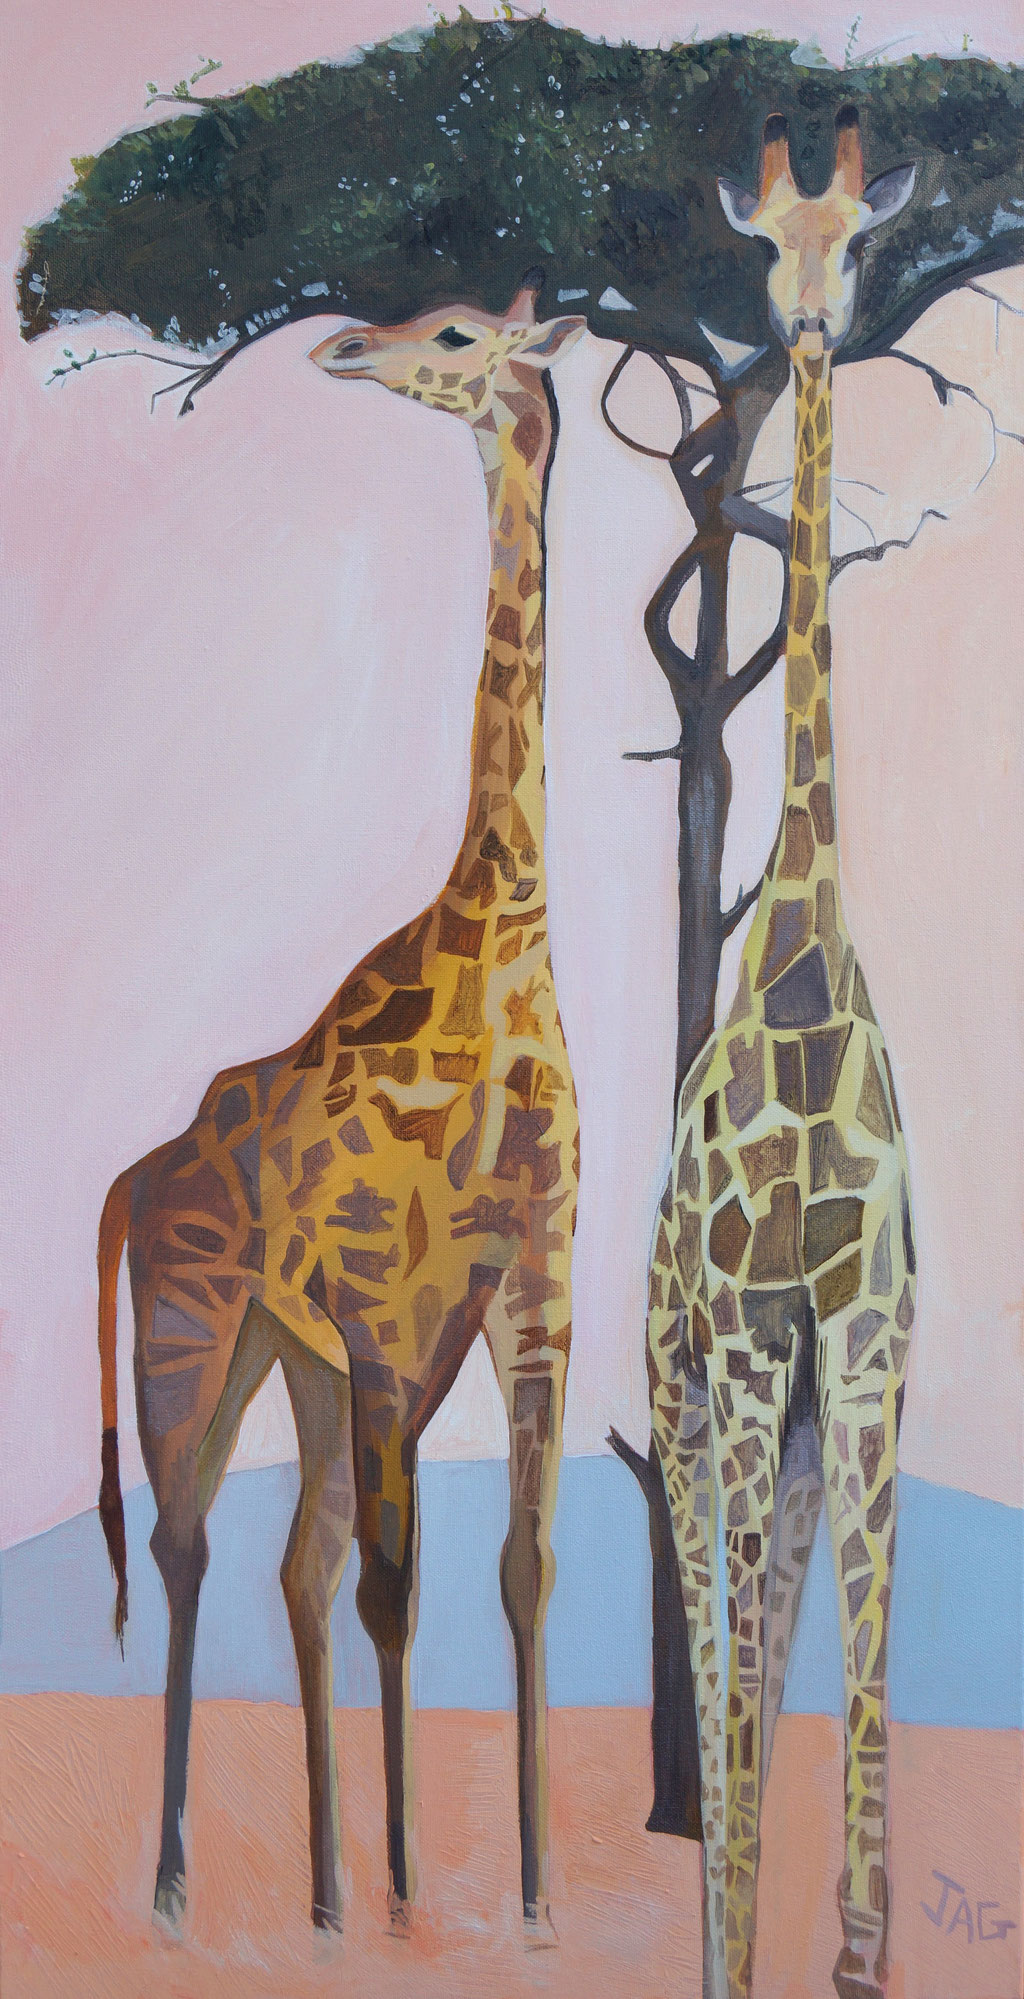 'Larger than life' acrylic on canvas, 2019, 50 x 100cm - SOLD